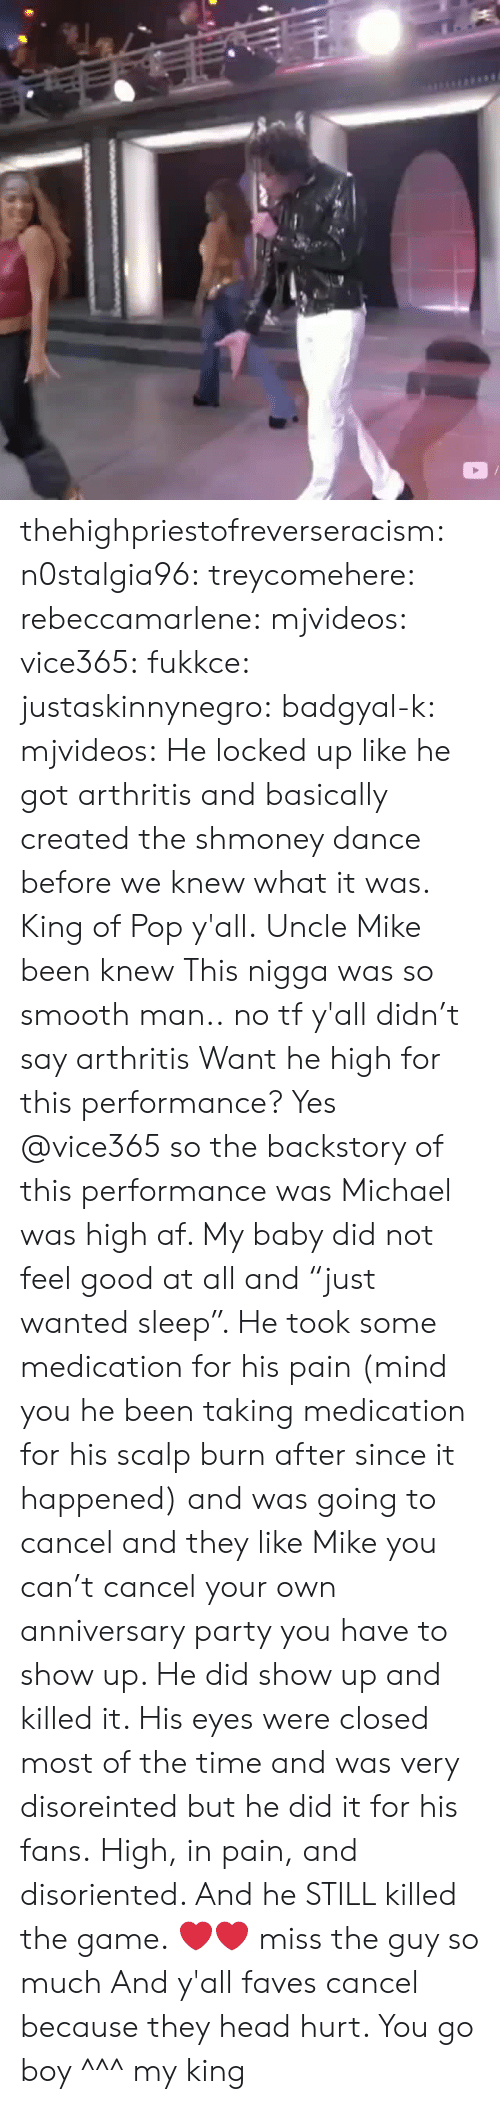 """So Smooth: thehighpriestofreverseracism:  n0stalgia96:  treycomehere:  rebeccamarlene:   mjvideos:   vice365:   fukkce:   justaskinnynegro:   badgyal-k:  mjvideos:   He locked up like he got arthritis and basically created the shmoney dance before we knew what it was.   King of Pop y'all.   Uncle Mike been knew   This nigga was so smooth man..   no tf y'all didn't say arthritis   Want he high for this performance?   Yes @vice365 so the backstory of this performance was Michael was high af. My baby did not feel good at all and """"just wanted sleep"""". He took some medication for his pain (mind you he been taking medication for his scalp burn after since it happened)  and was going to cancel and they like Mike you can't cancel your own anniversary party you have to show up. He did show up and killed it. His eyes were closed most of the time and was very disoreinted but he did it for his fans.   High, in pain, and disoriented. And he STILL killed the game. ❤❤ miss the guy so much   And y'all faves cancel because they head hurt. You go boy  ^^^  my king"""